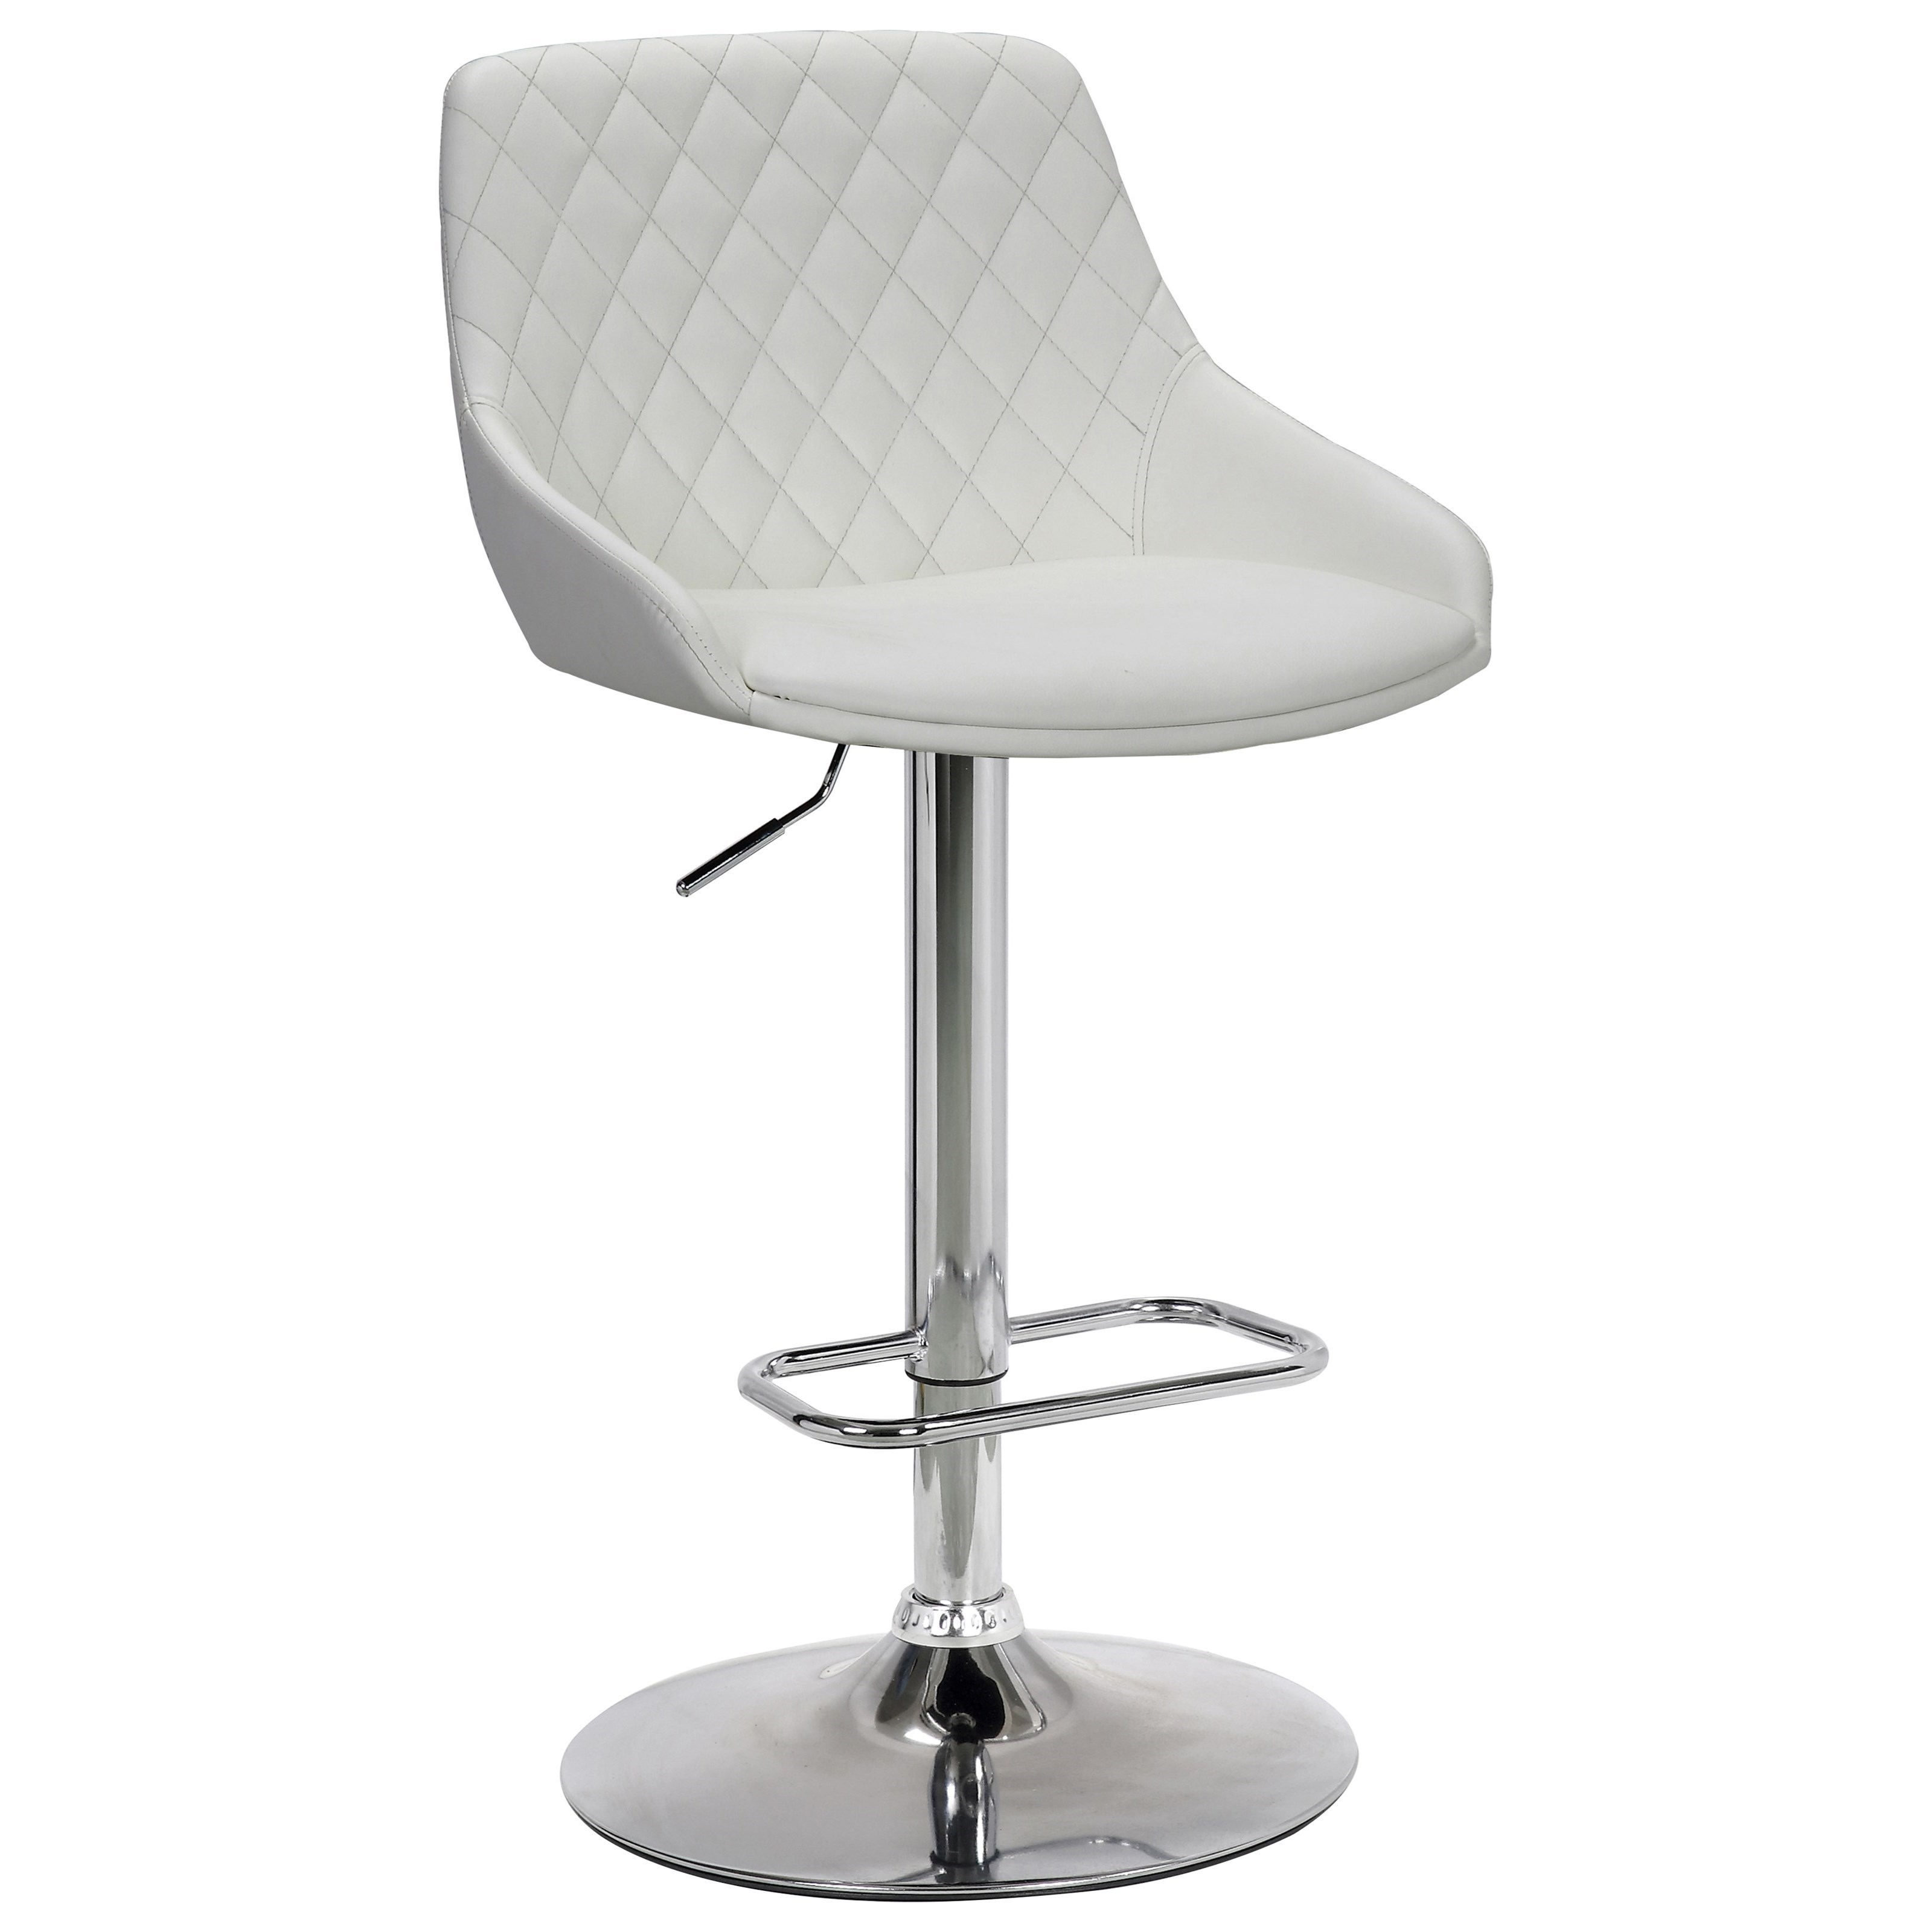 Anibal Contemporary Adjustable Barstool in Chrome by Armen Living at Fisher Home Furnishings